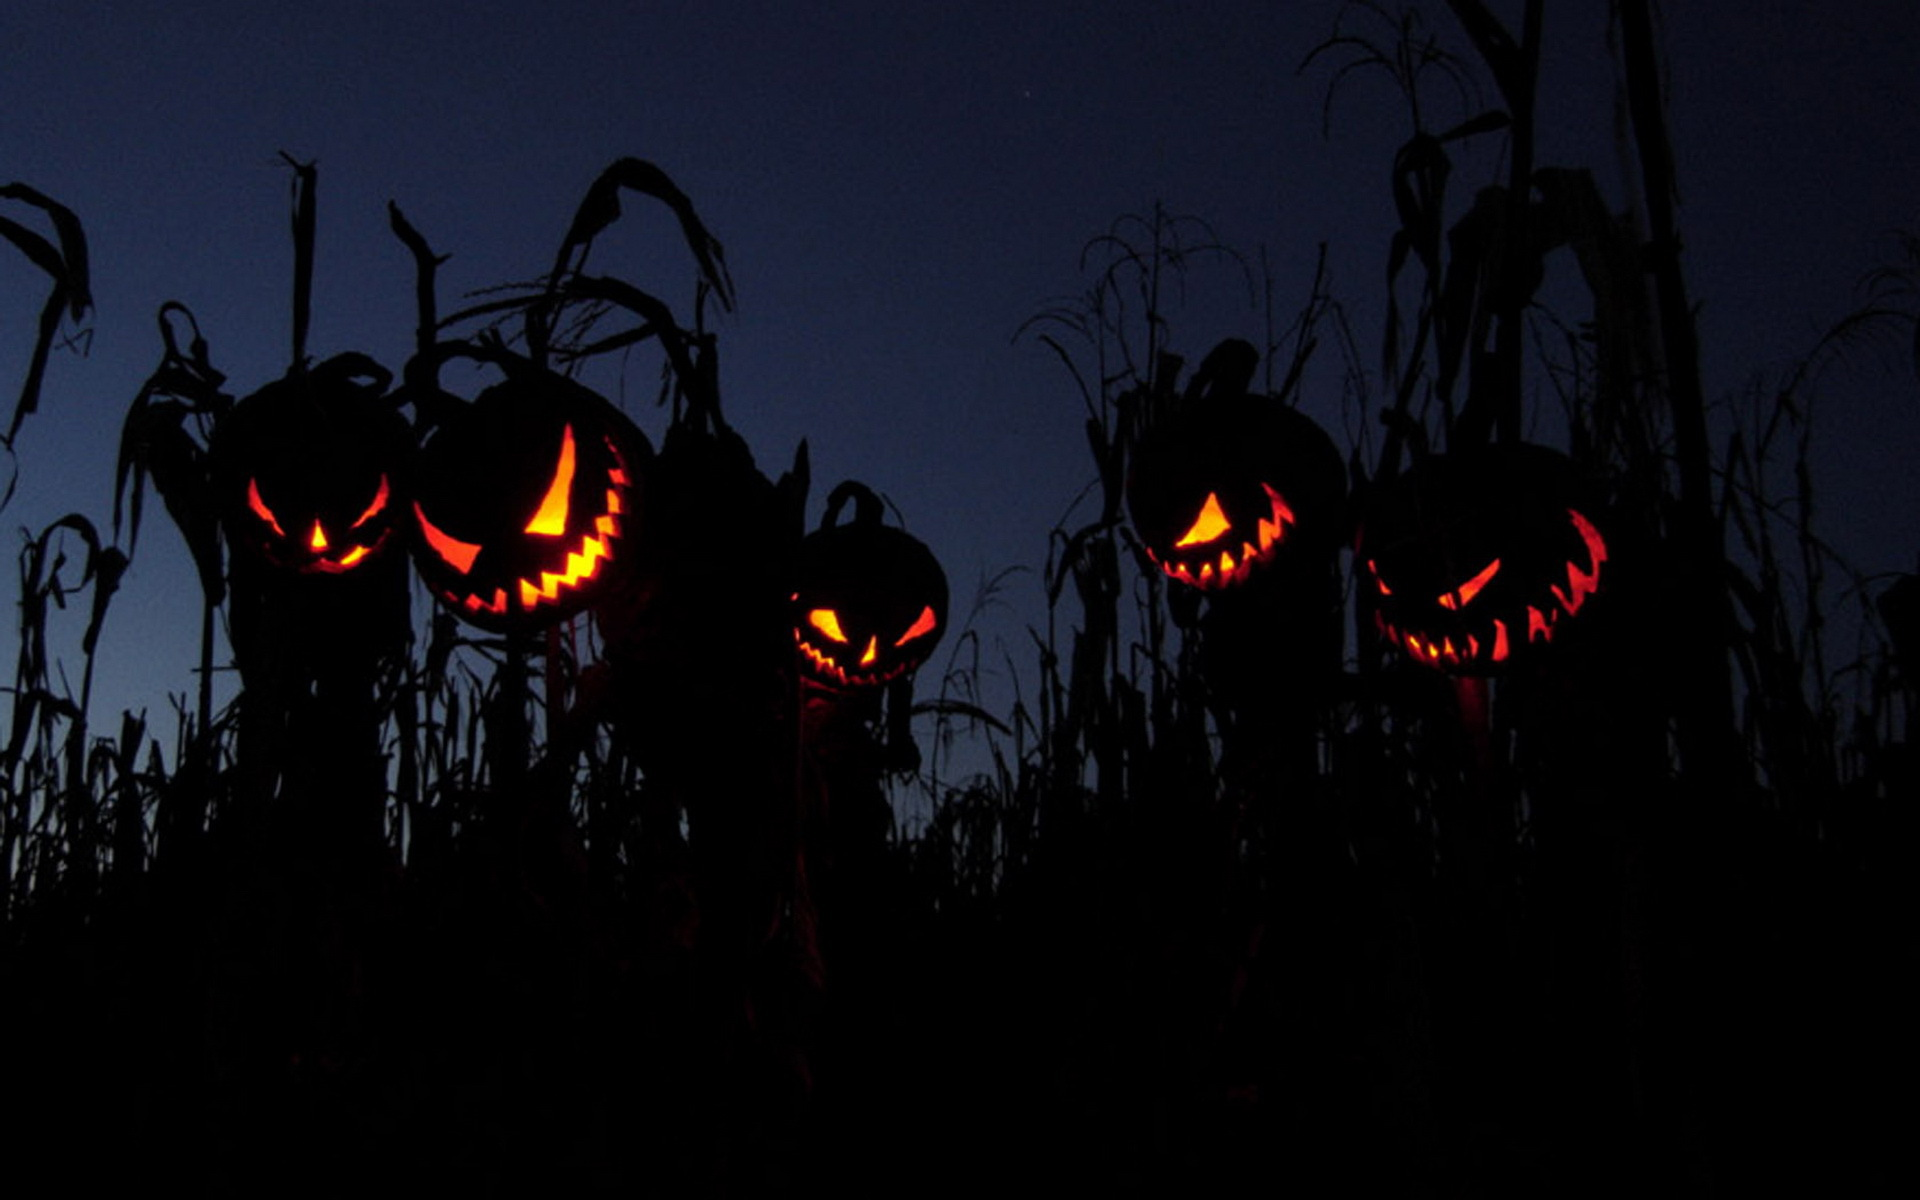 Scary halloween wallpapers images photos pictures backgrounds - Scary halloween pumpkin wallpaper ...